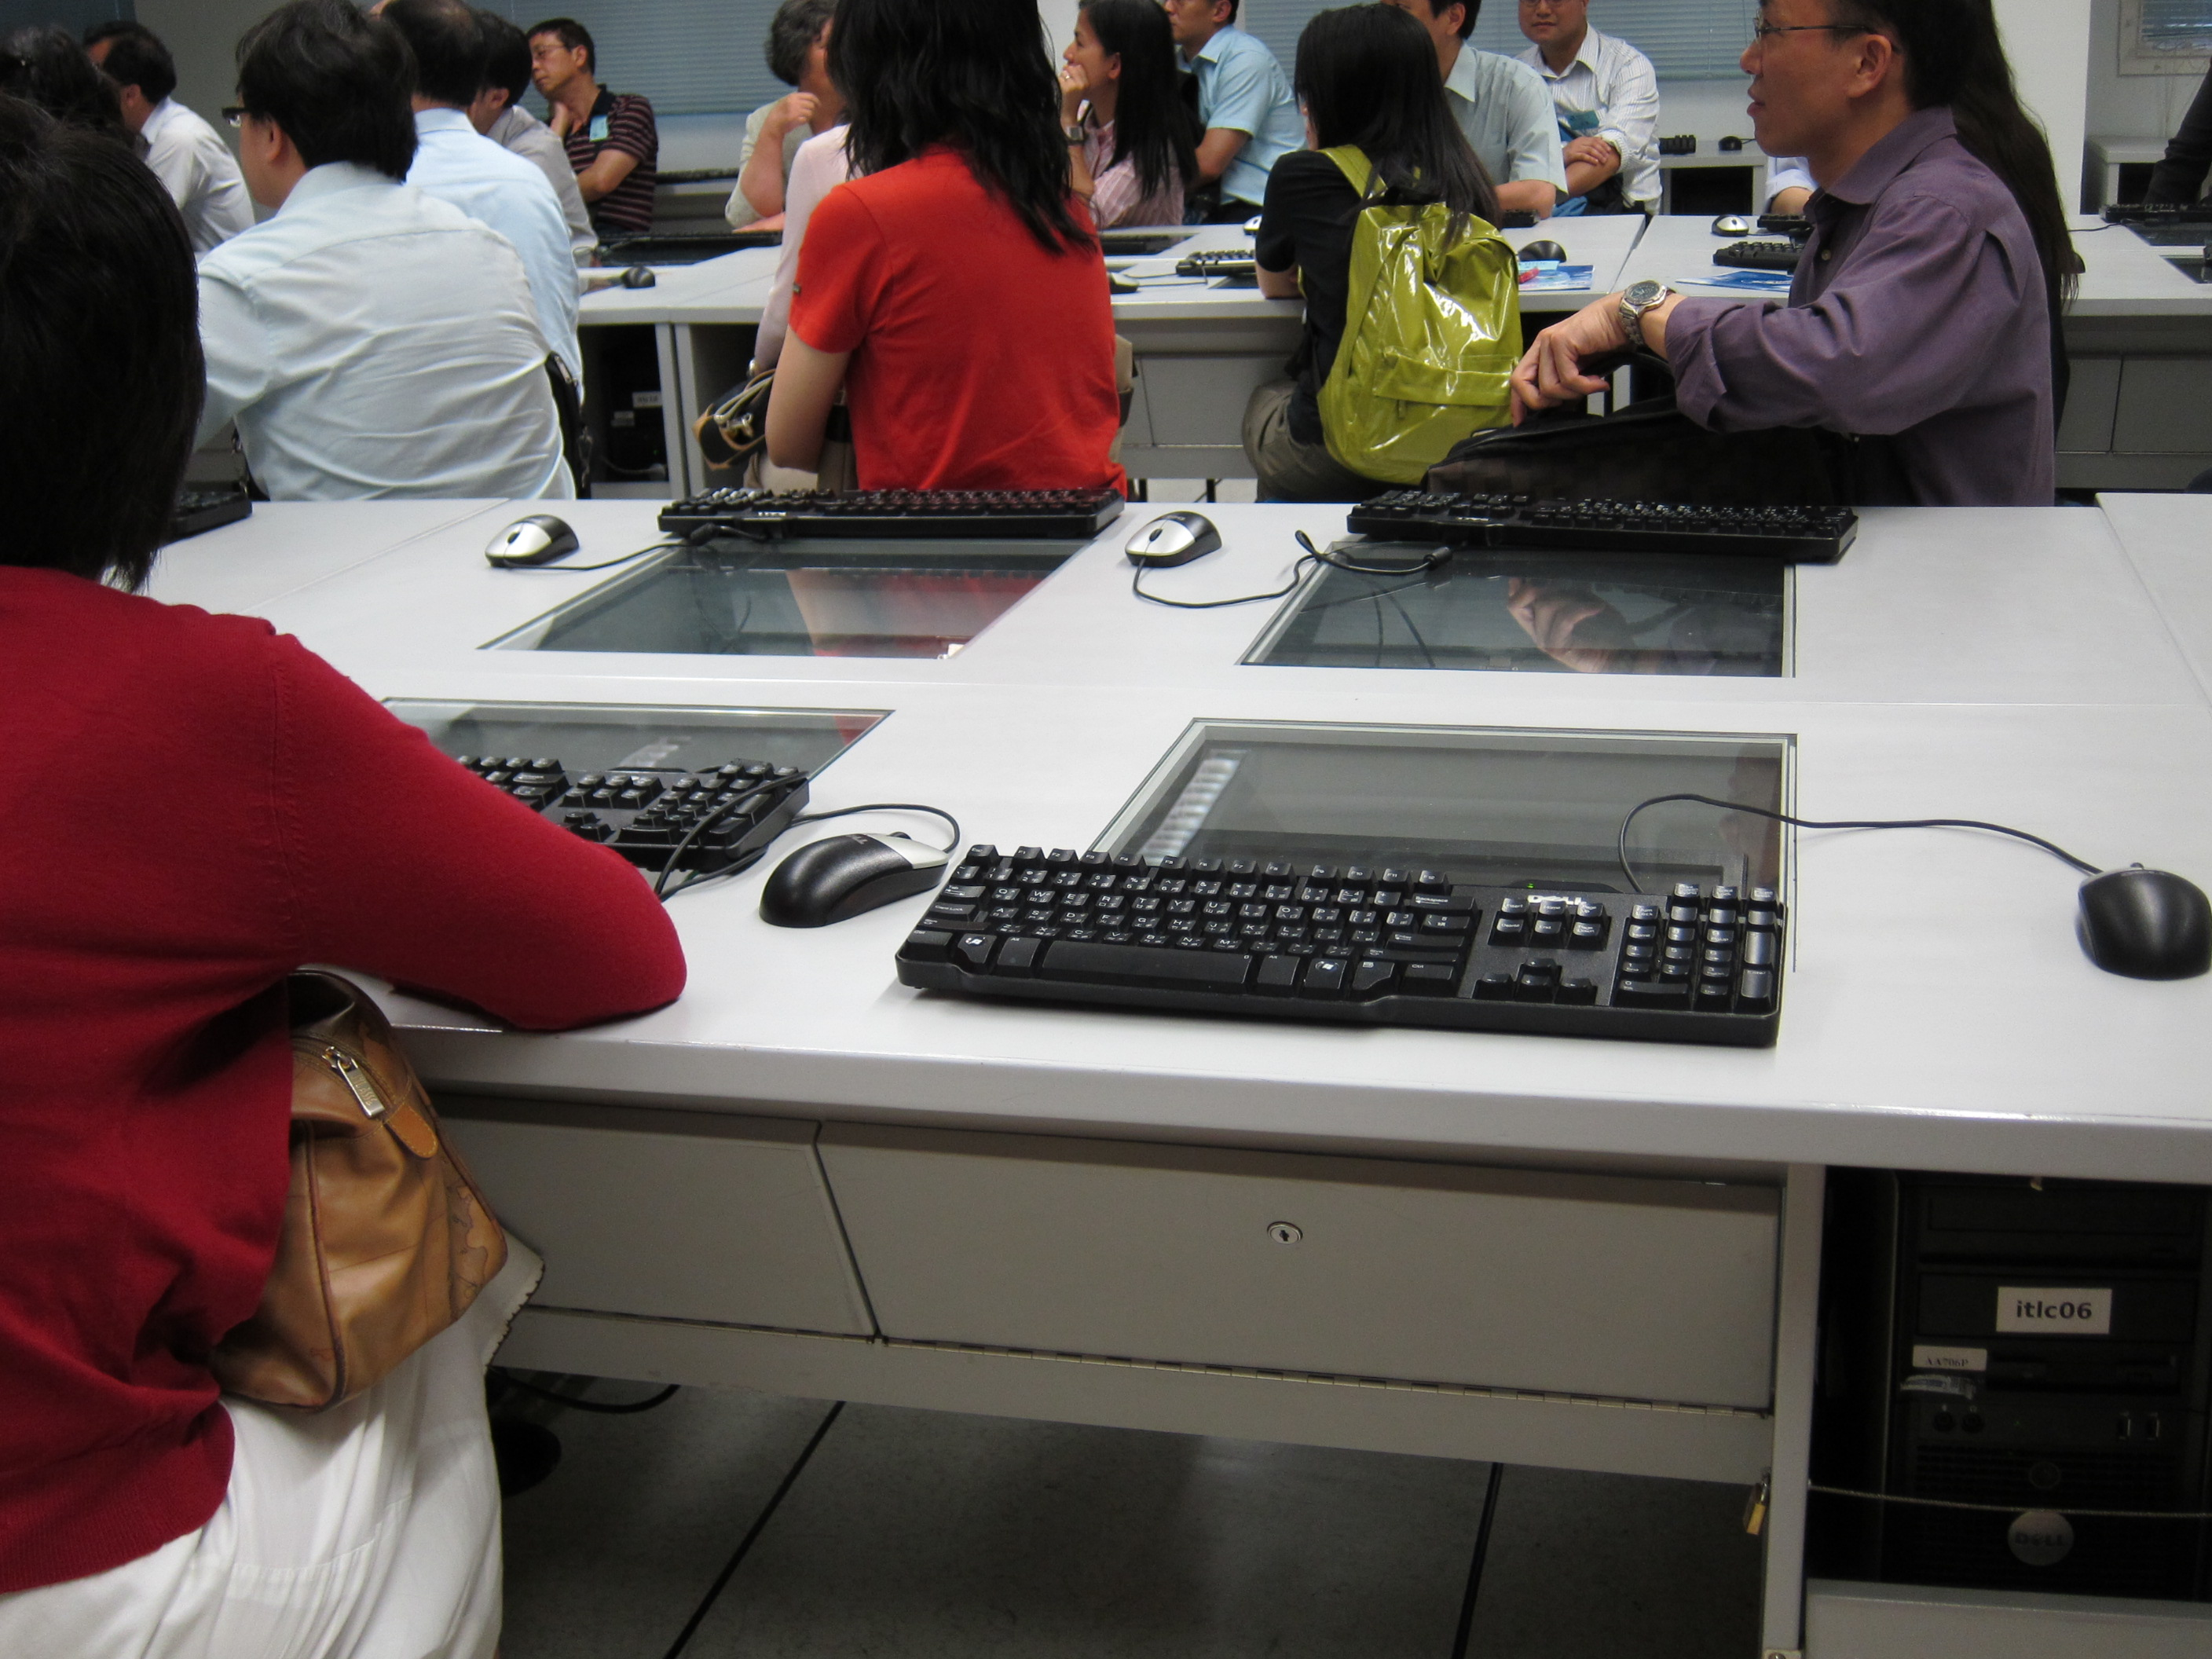 Use of New Technology for School Administrative Work (18 May 2010)